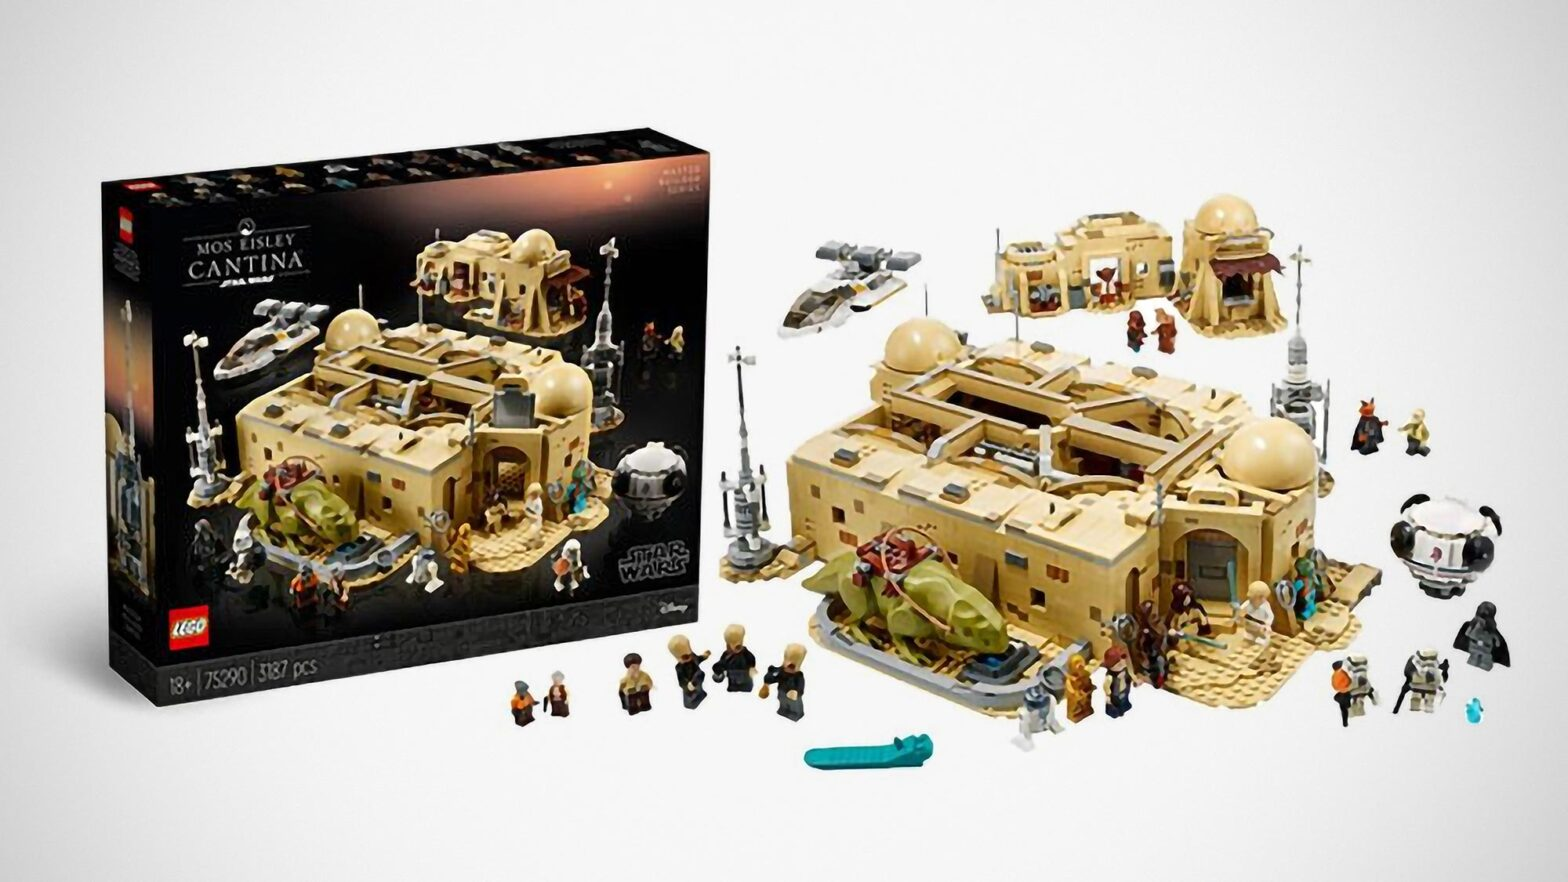 LEGO Star Wars Mos Eisley Cantina First Look